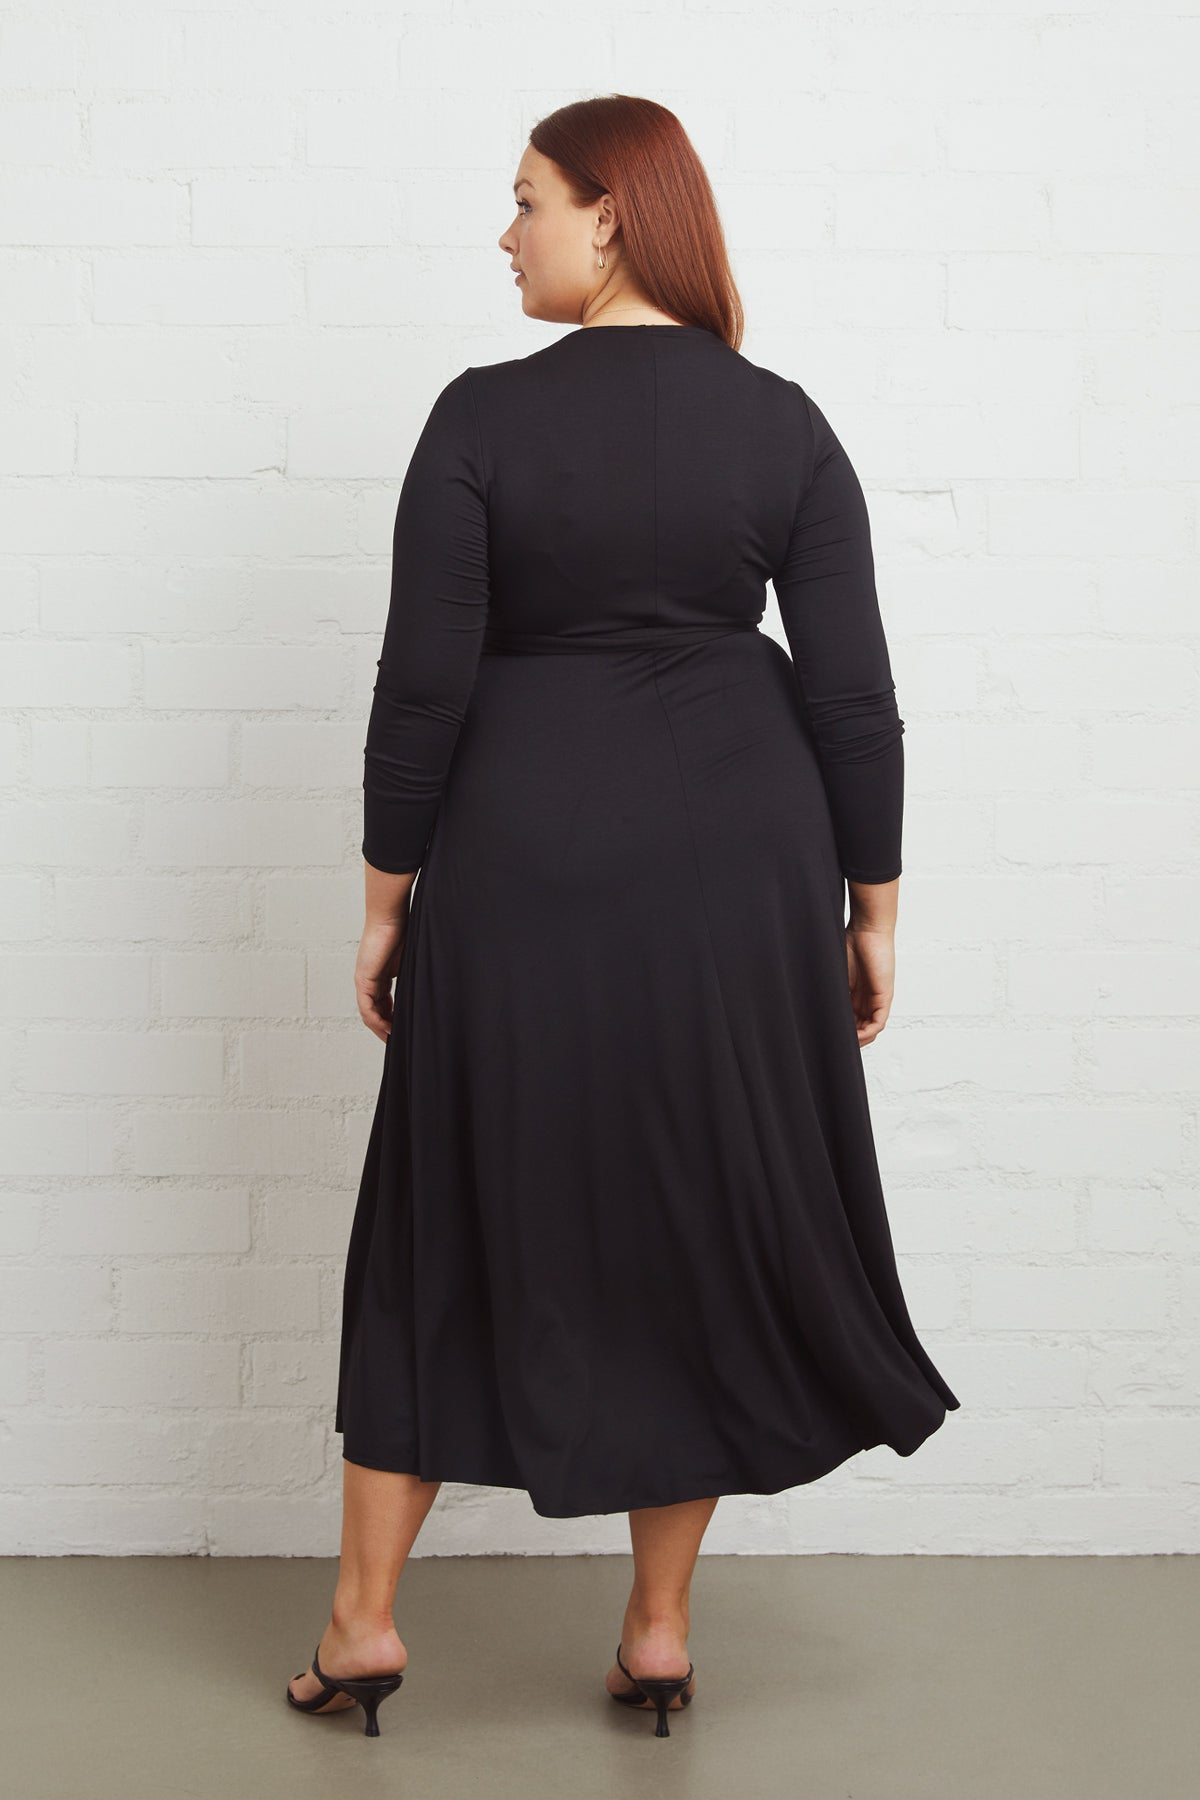 Mid-Length Harlow Dress - Black, Plus Size